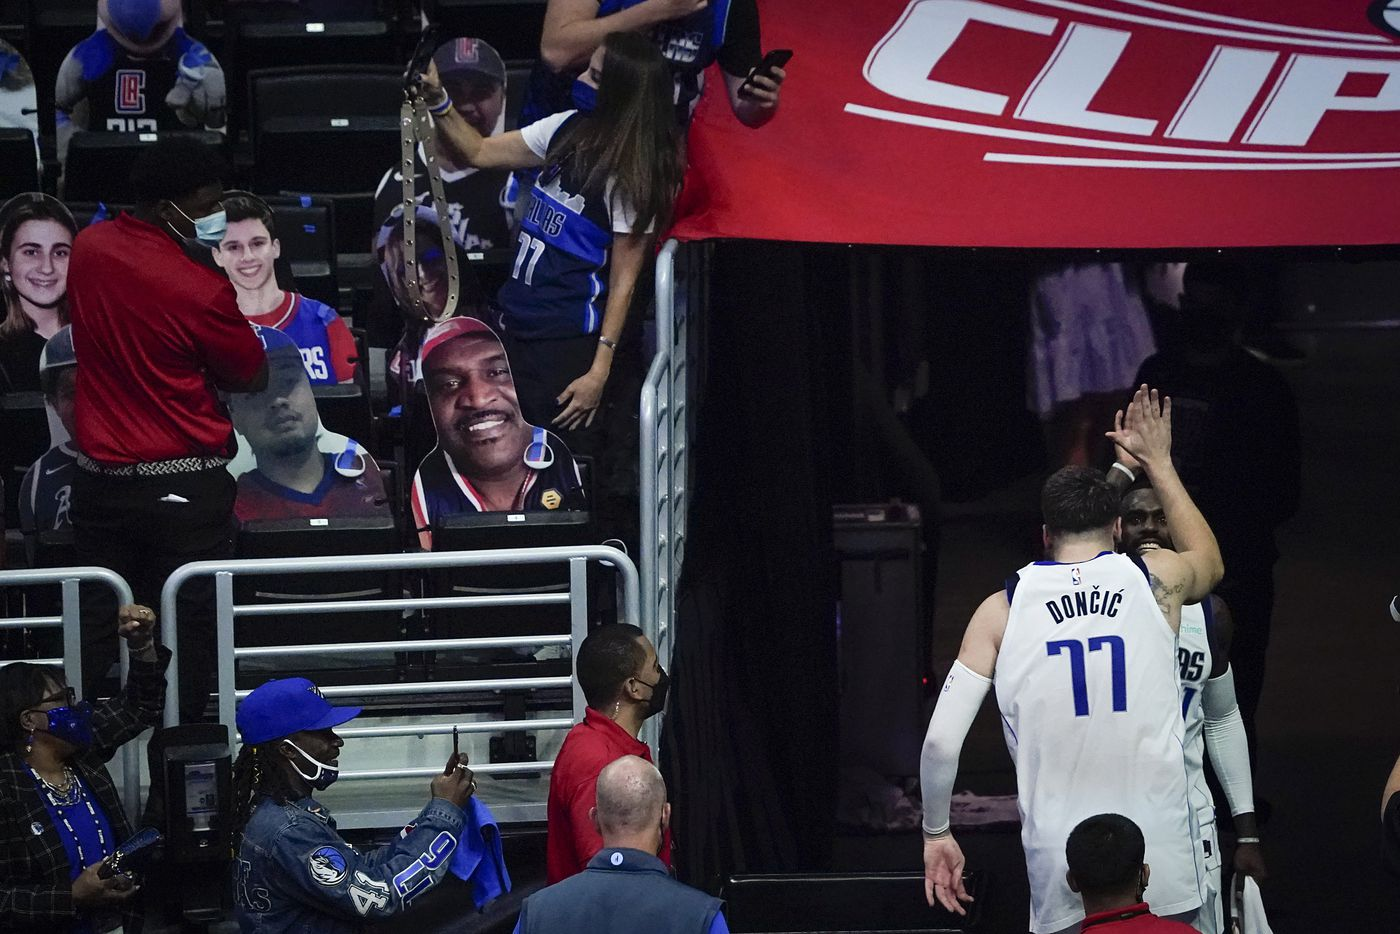 Dallas Mavericks guard Luka Doncic (77) celebrates with forward Tim Hardaway Jr. (11) as they leave the court after the Mavericks 127-121 victory over the LA Clippers in an NBA playoff basketball game at Staples Center on Wednesday, May 26, 2021, in Los Angeles.